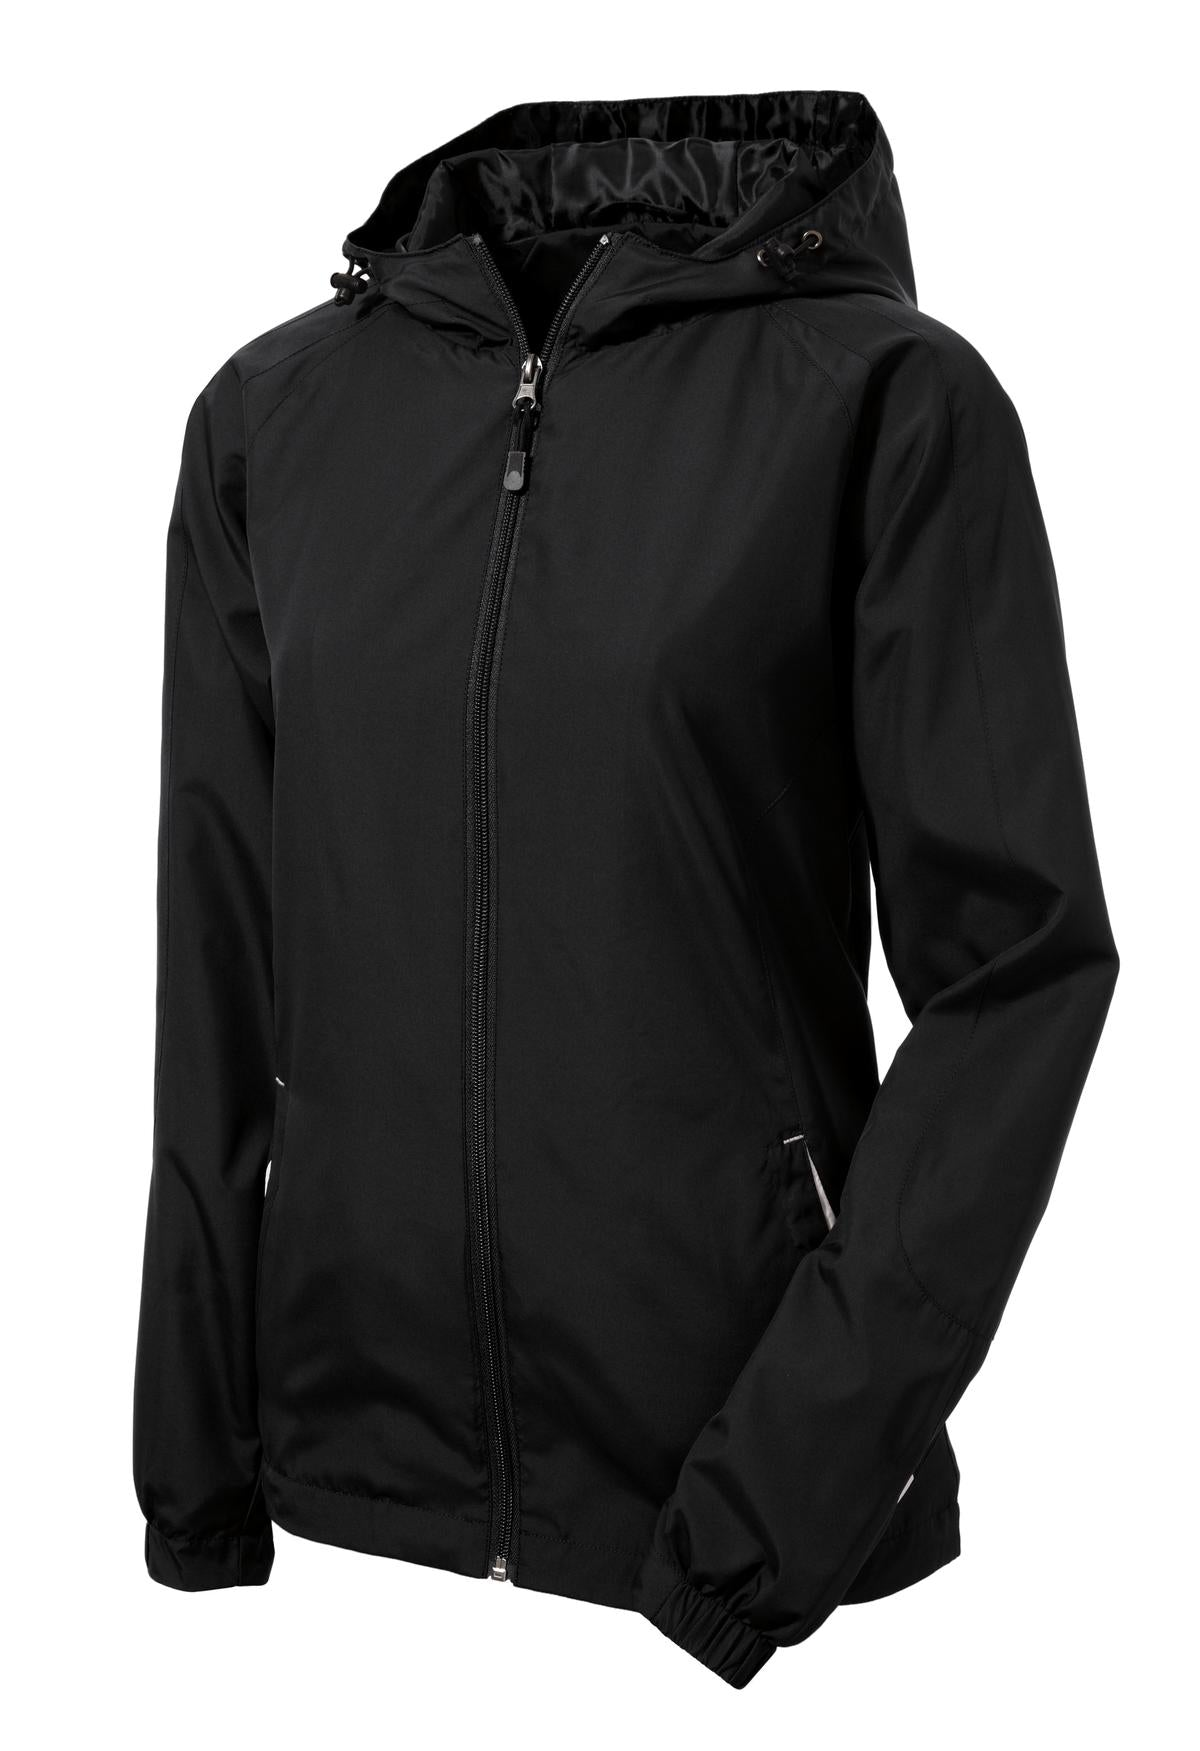 Mafoose Women's Colorblock Hooded Raglan Jacket Black/White-Front